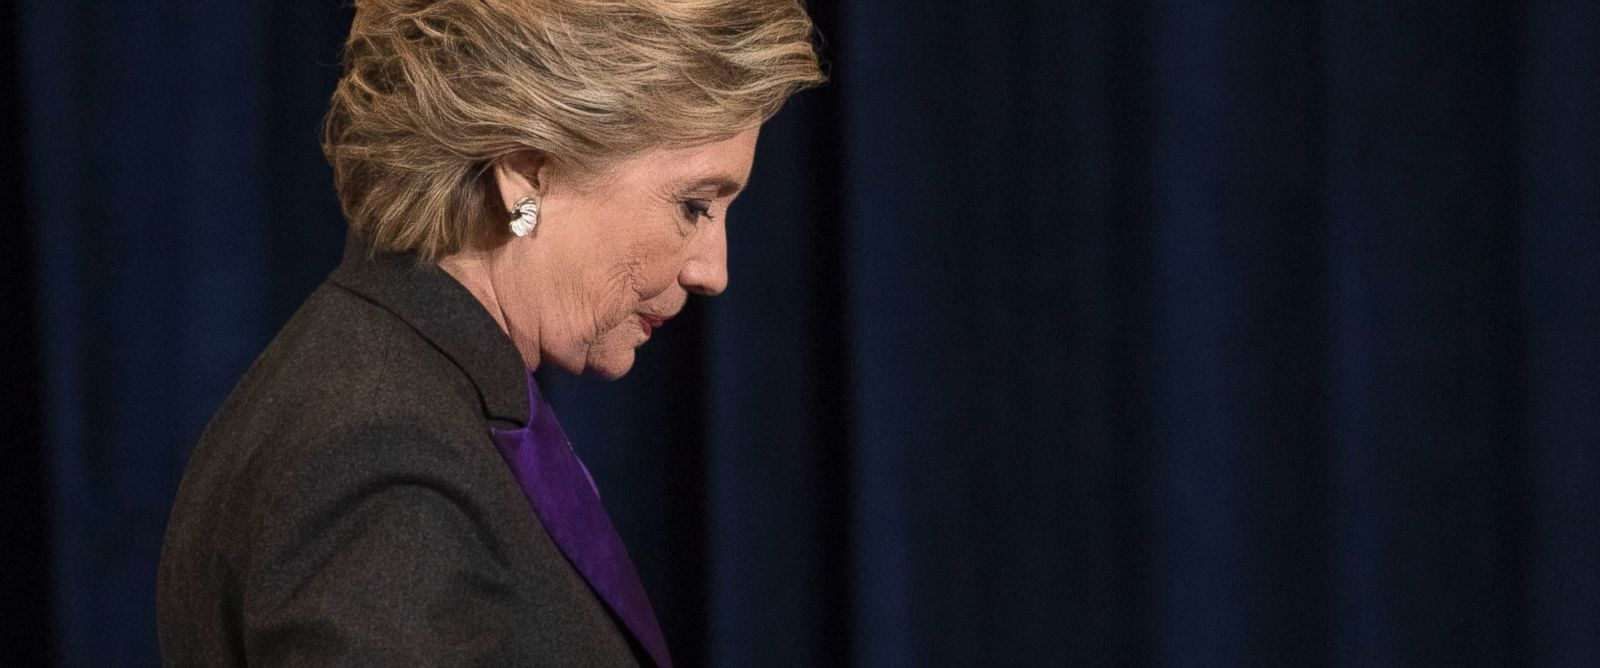 PHOTO: Democratic presidential candidate Hillary Clinton walks off the stage after speaking in New York, Nov. 9, 2016.